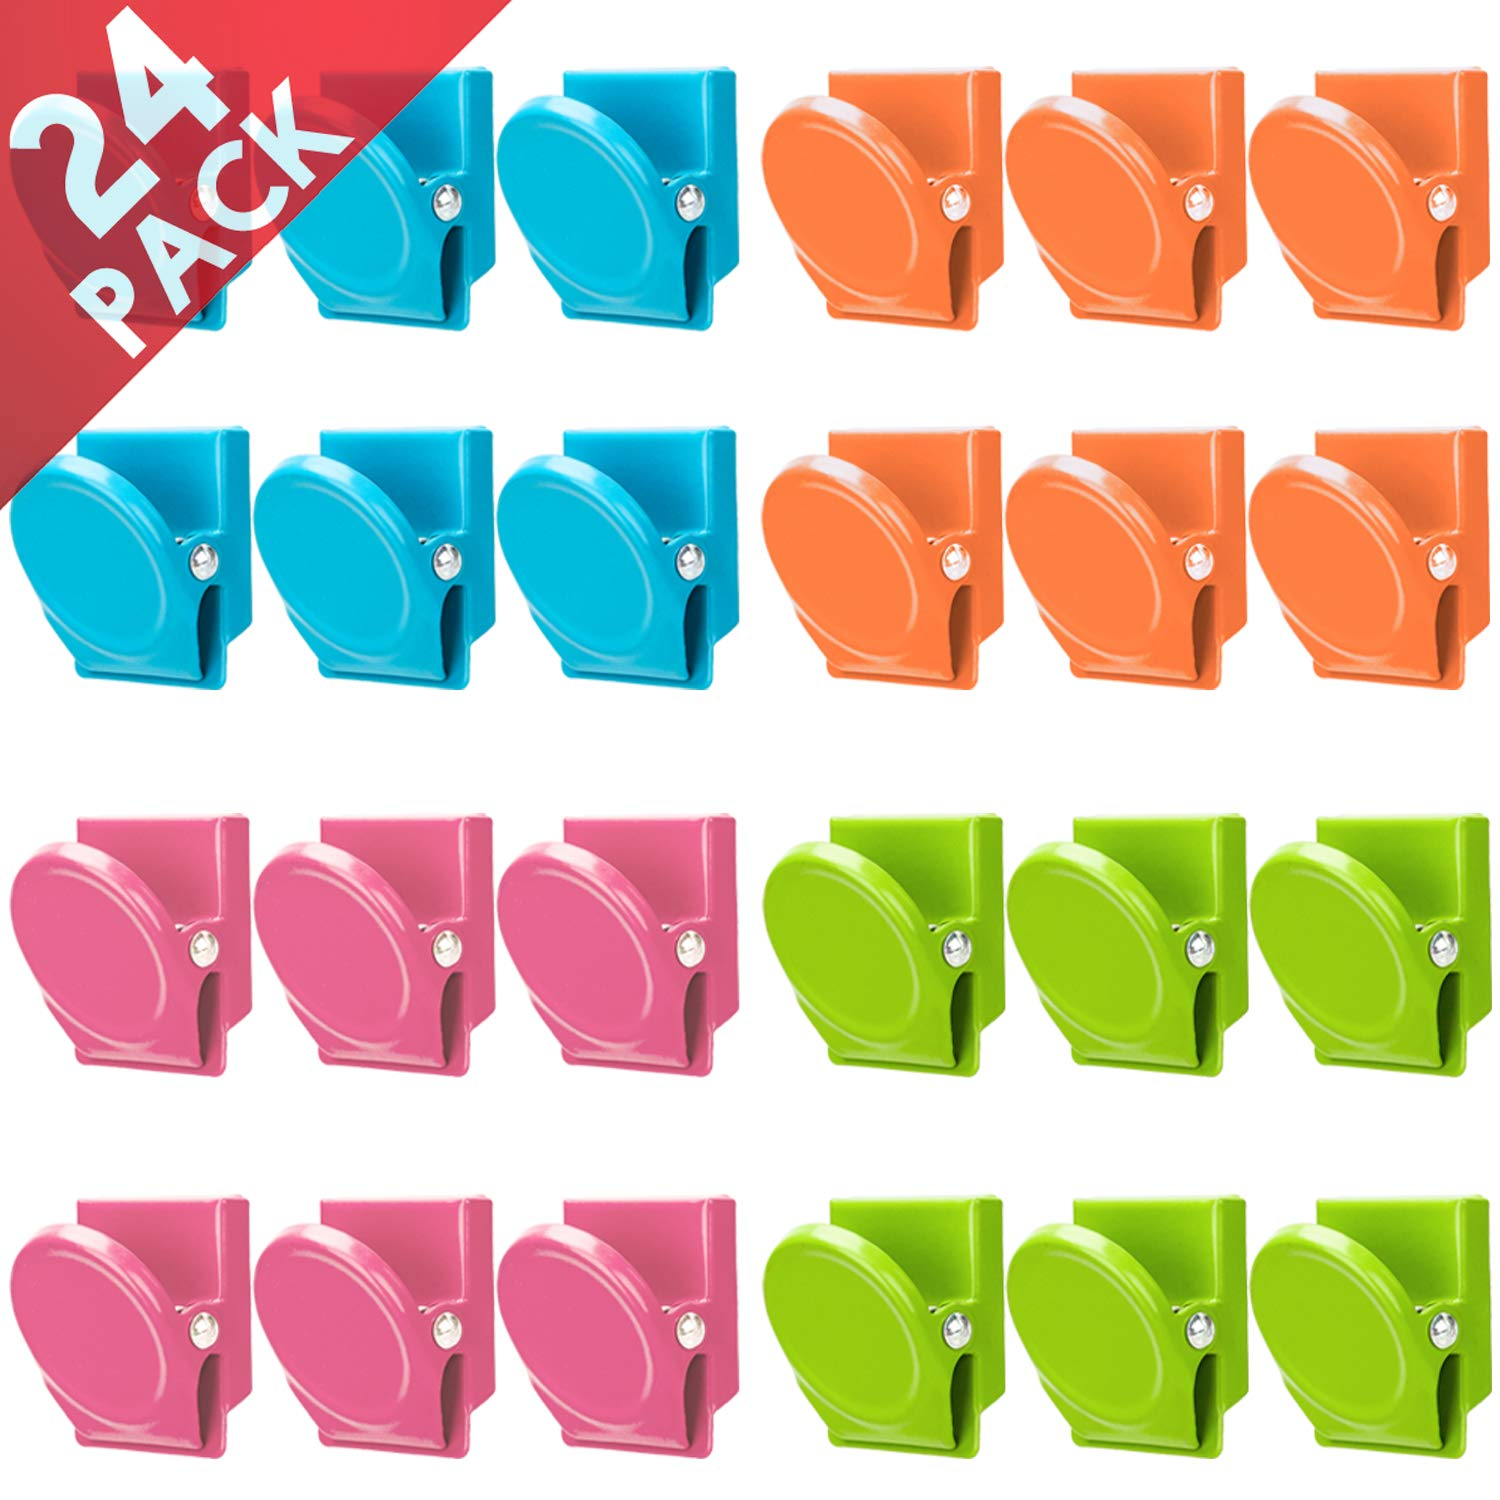 Magnetic Clips, 24 Pieces Magnetic Metal Clips, Refrigerator Whiteboard Wall Fridge Magnetic Memo Note Clips Magnets Metal Clip by VICNOVA